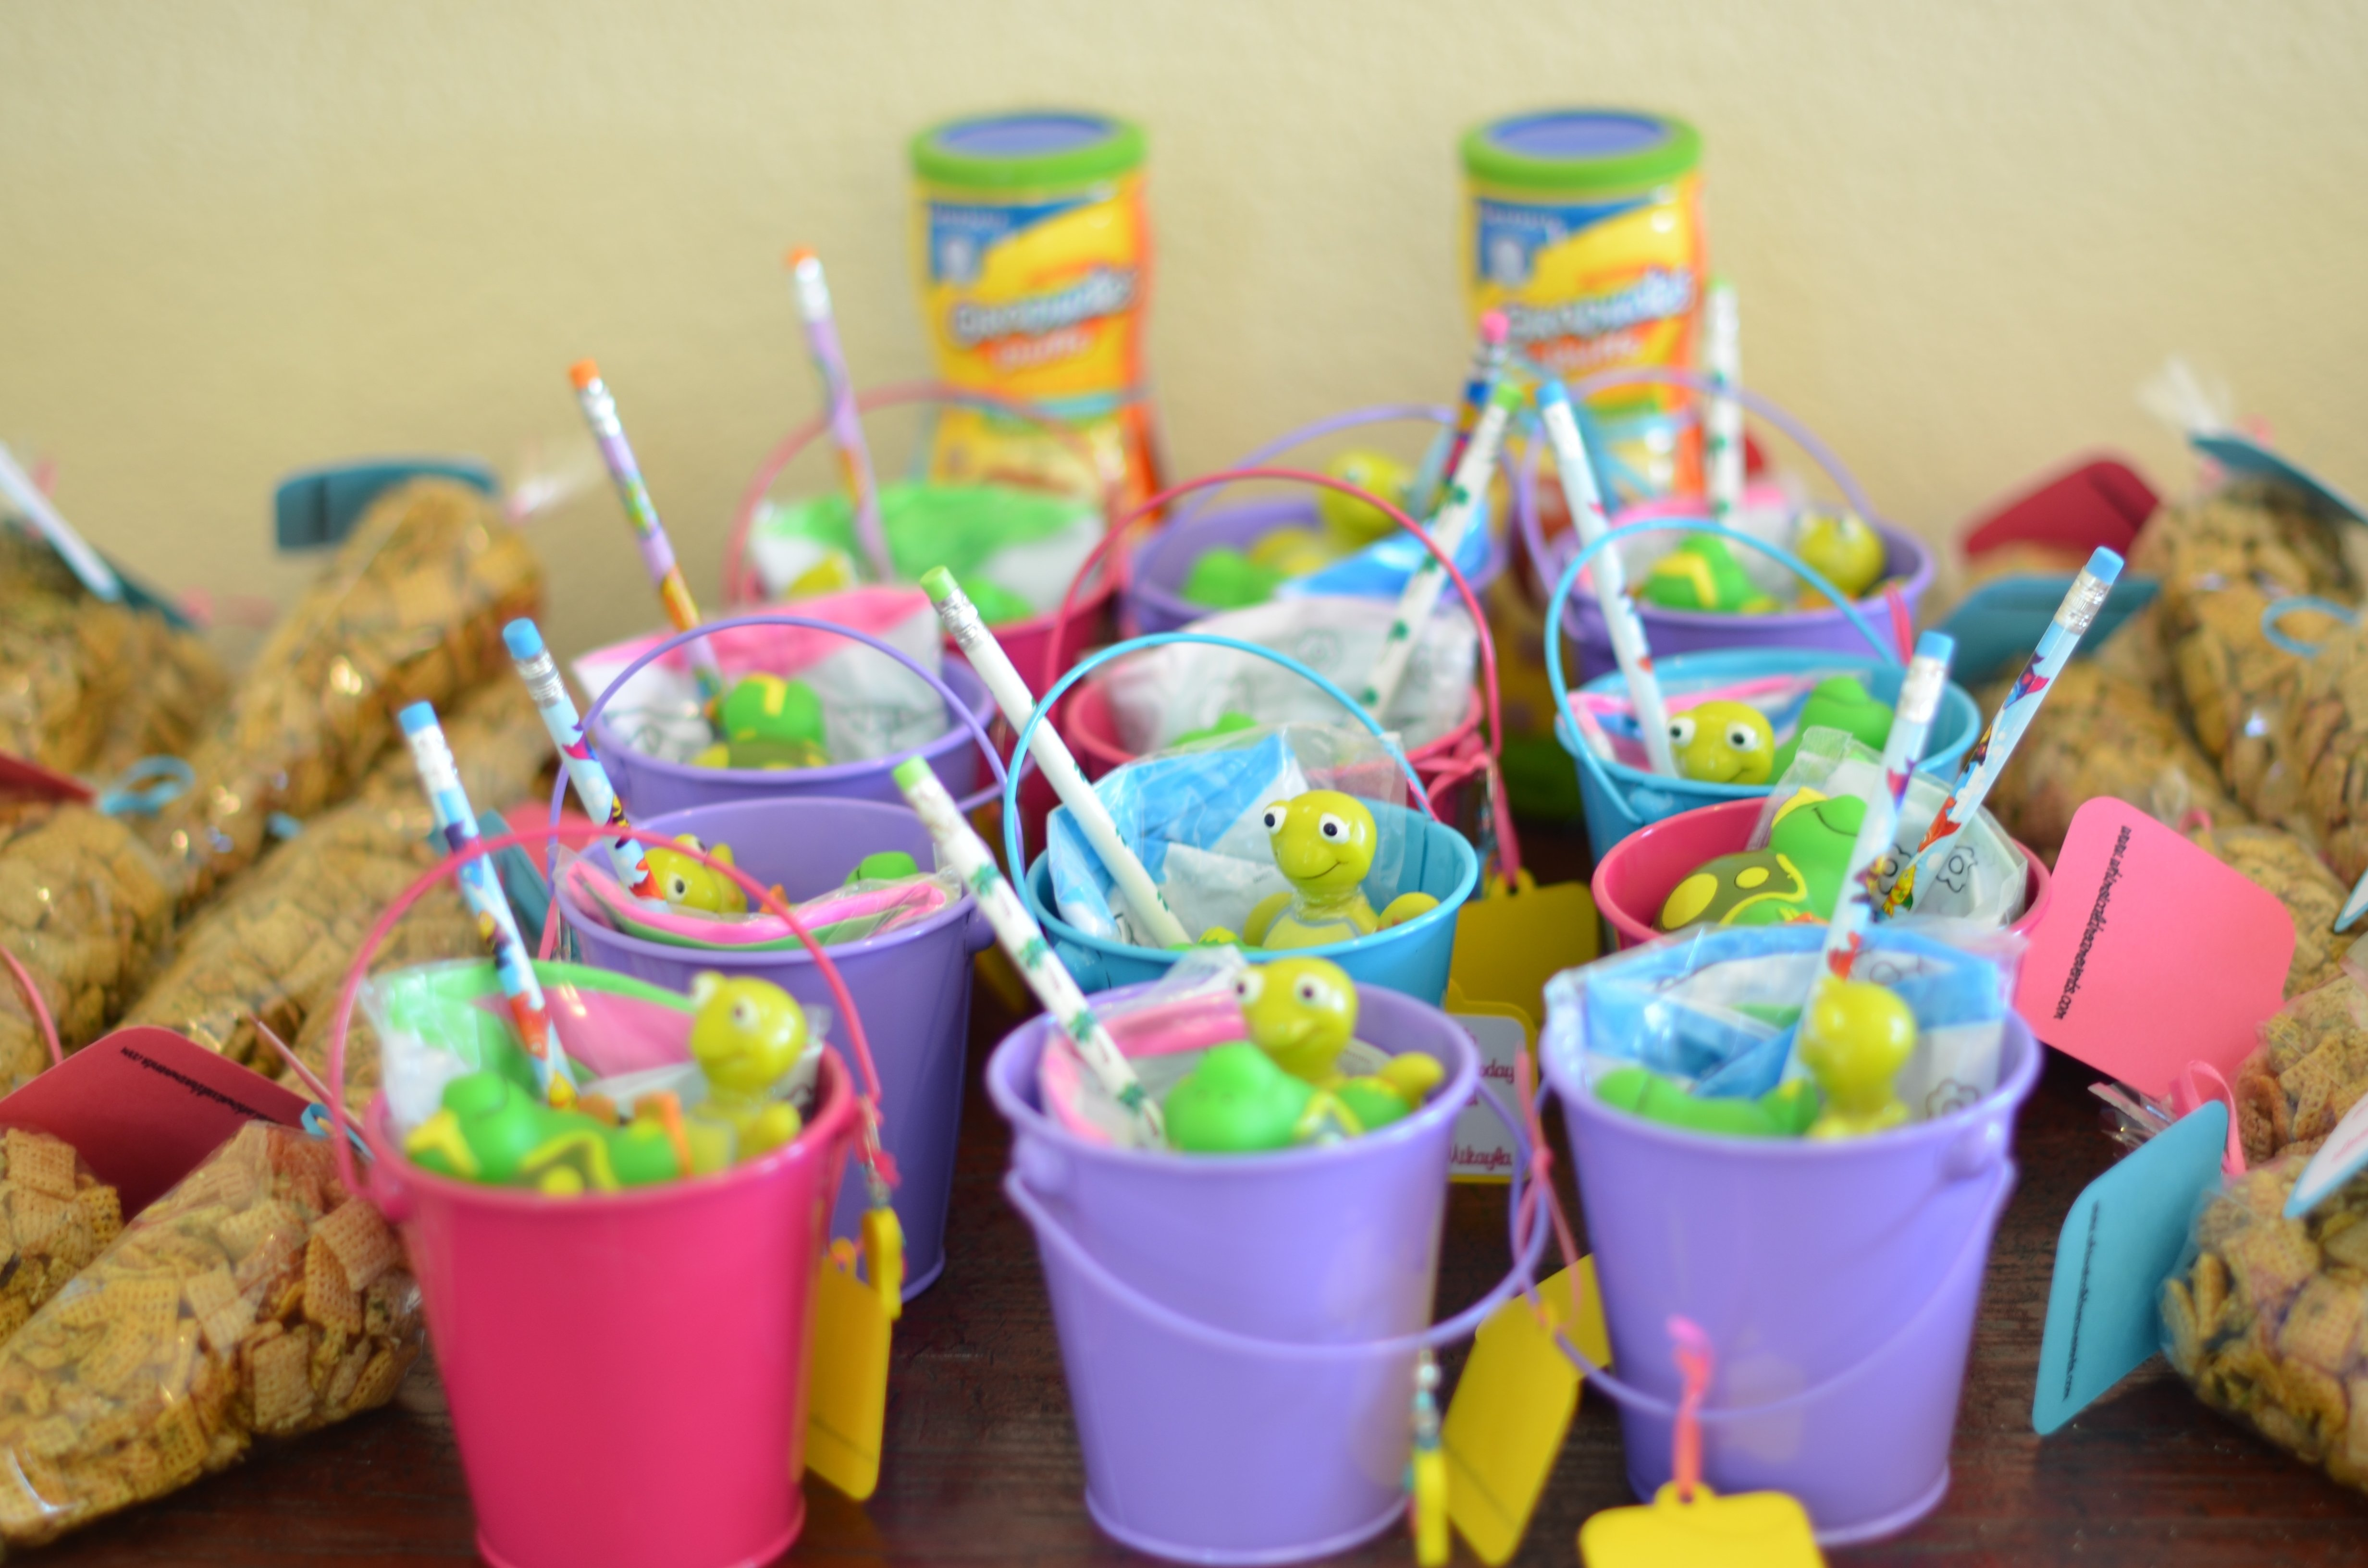 10 Most Popular Birthday Party Treat Bag Ideas gift bag ideas for kids birthday party fun gift bag ideas for kids 2020